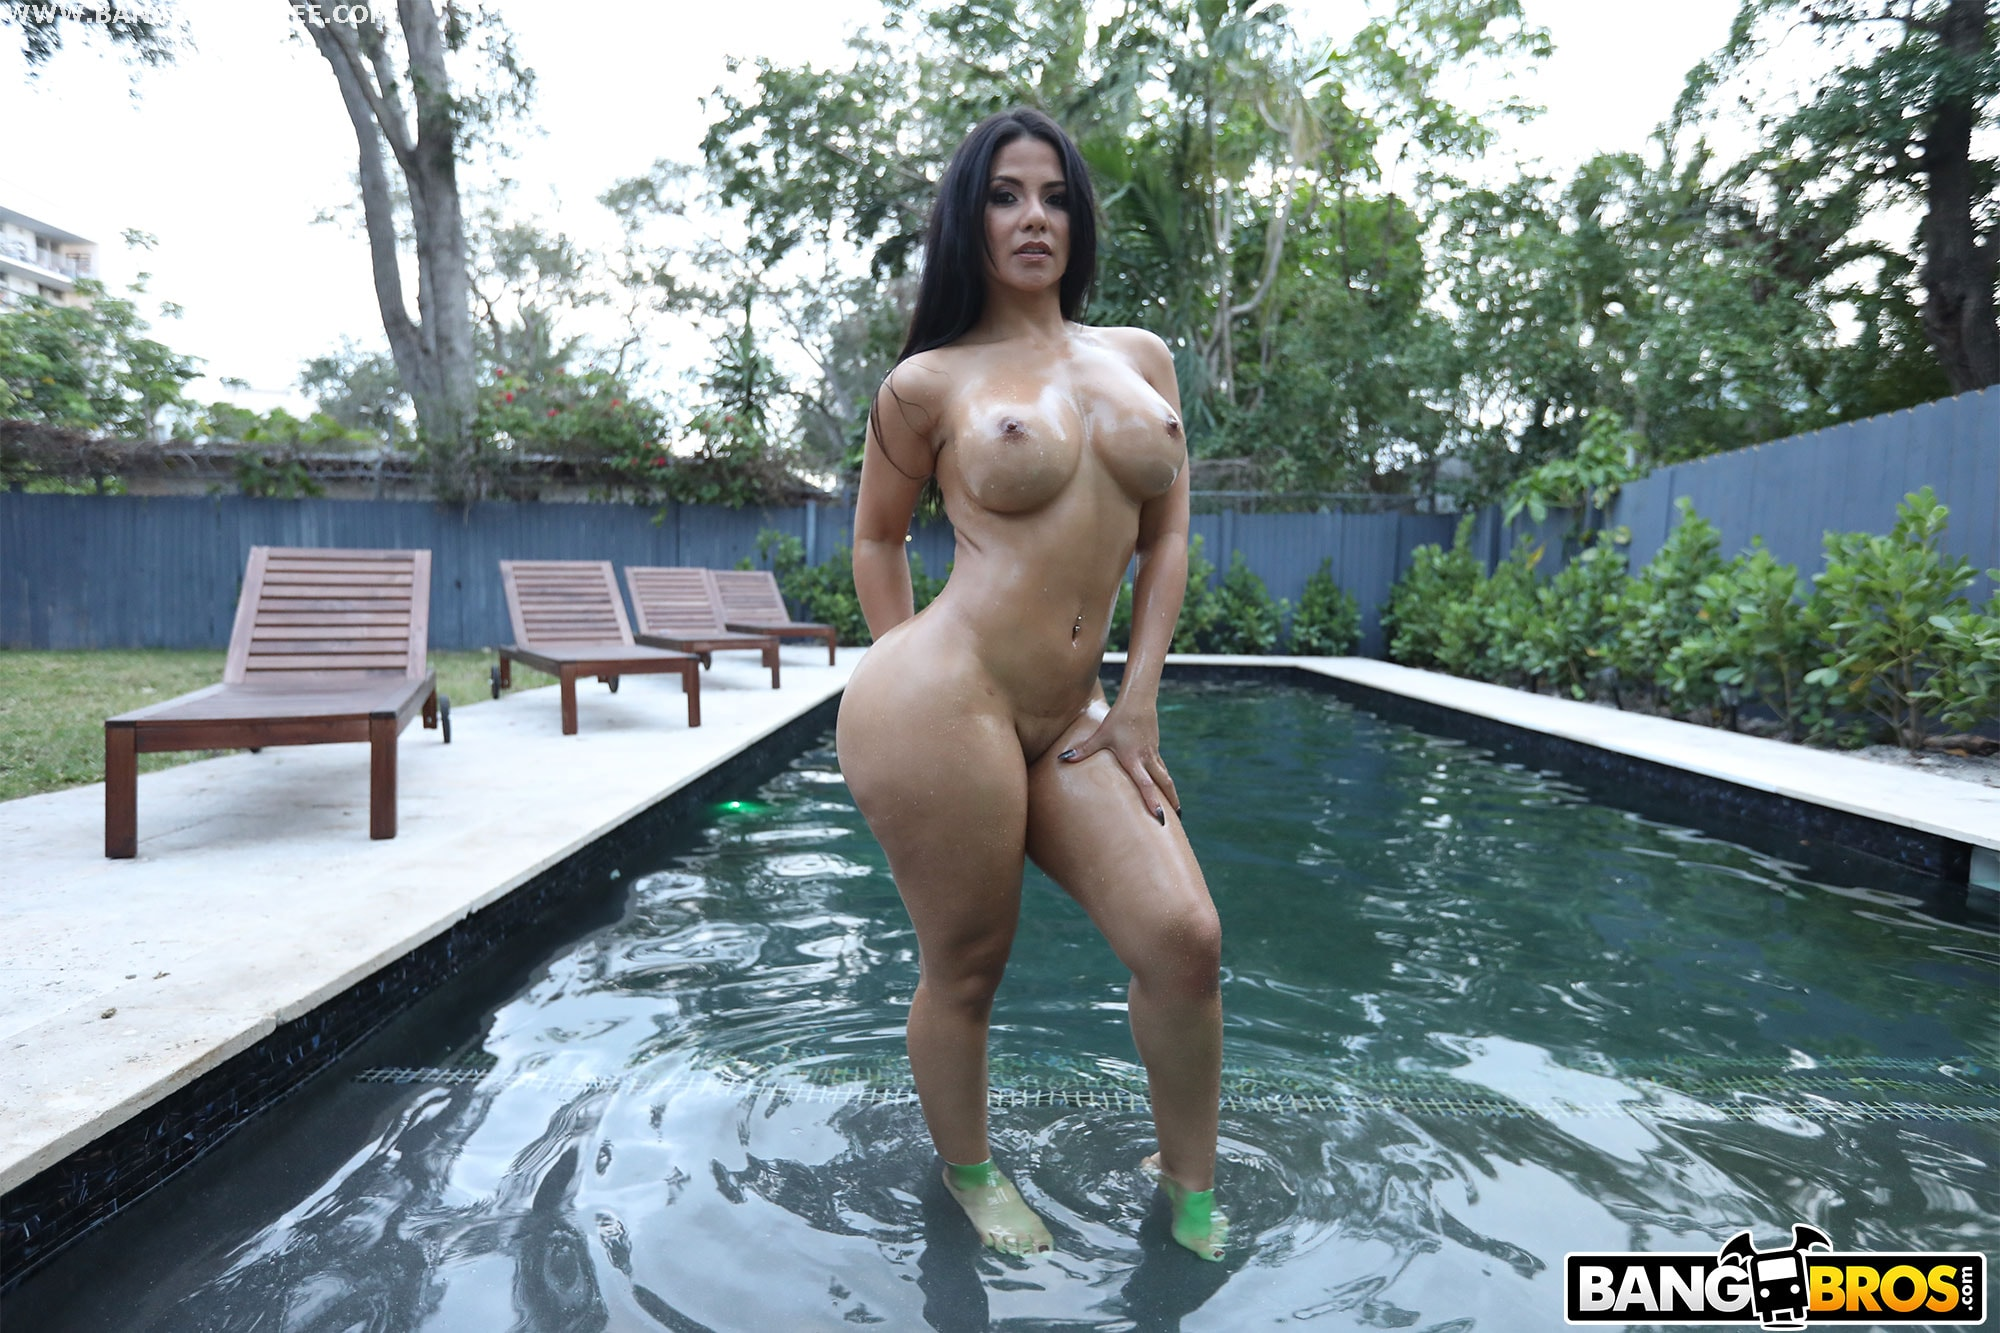 Bangbros 'Rose Monroe's Magnificent Ass' starring Rose Monroe (photo 65)